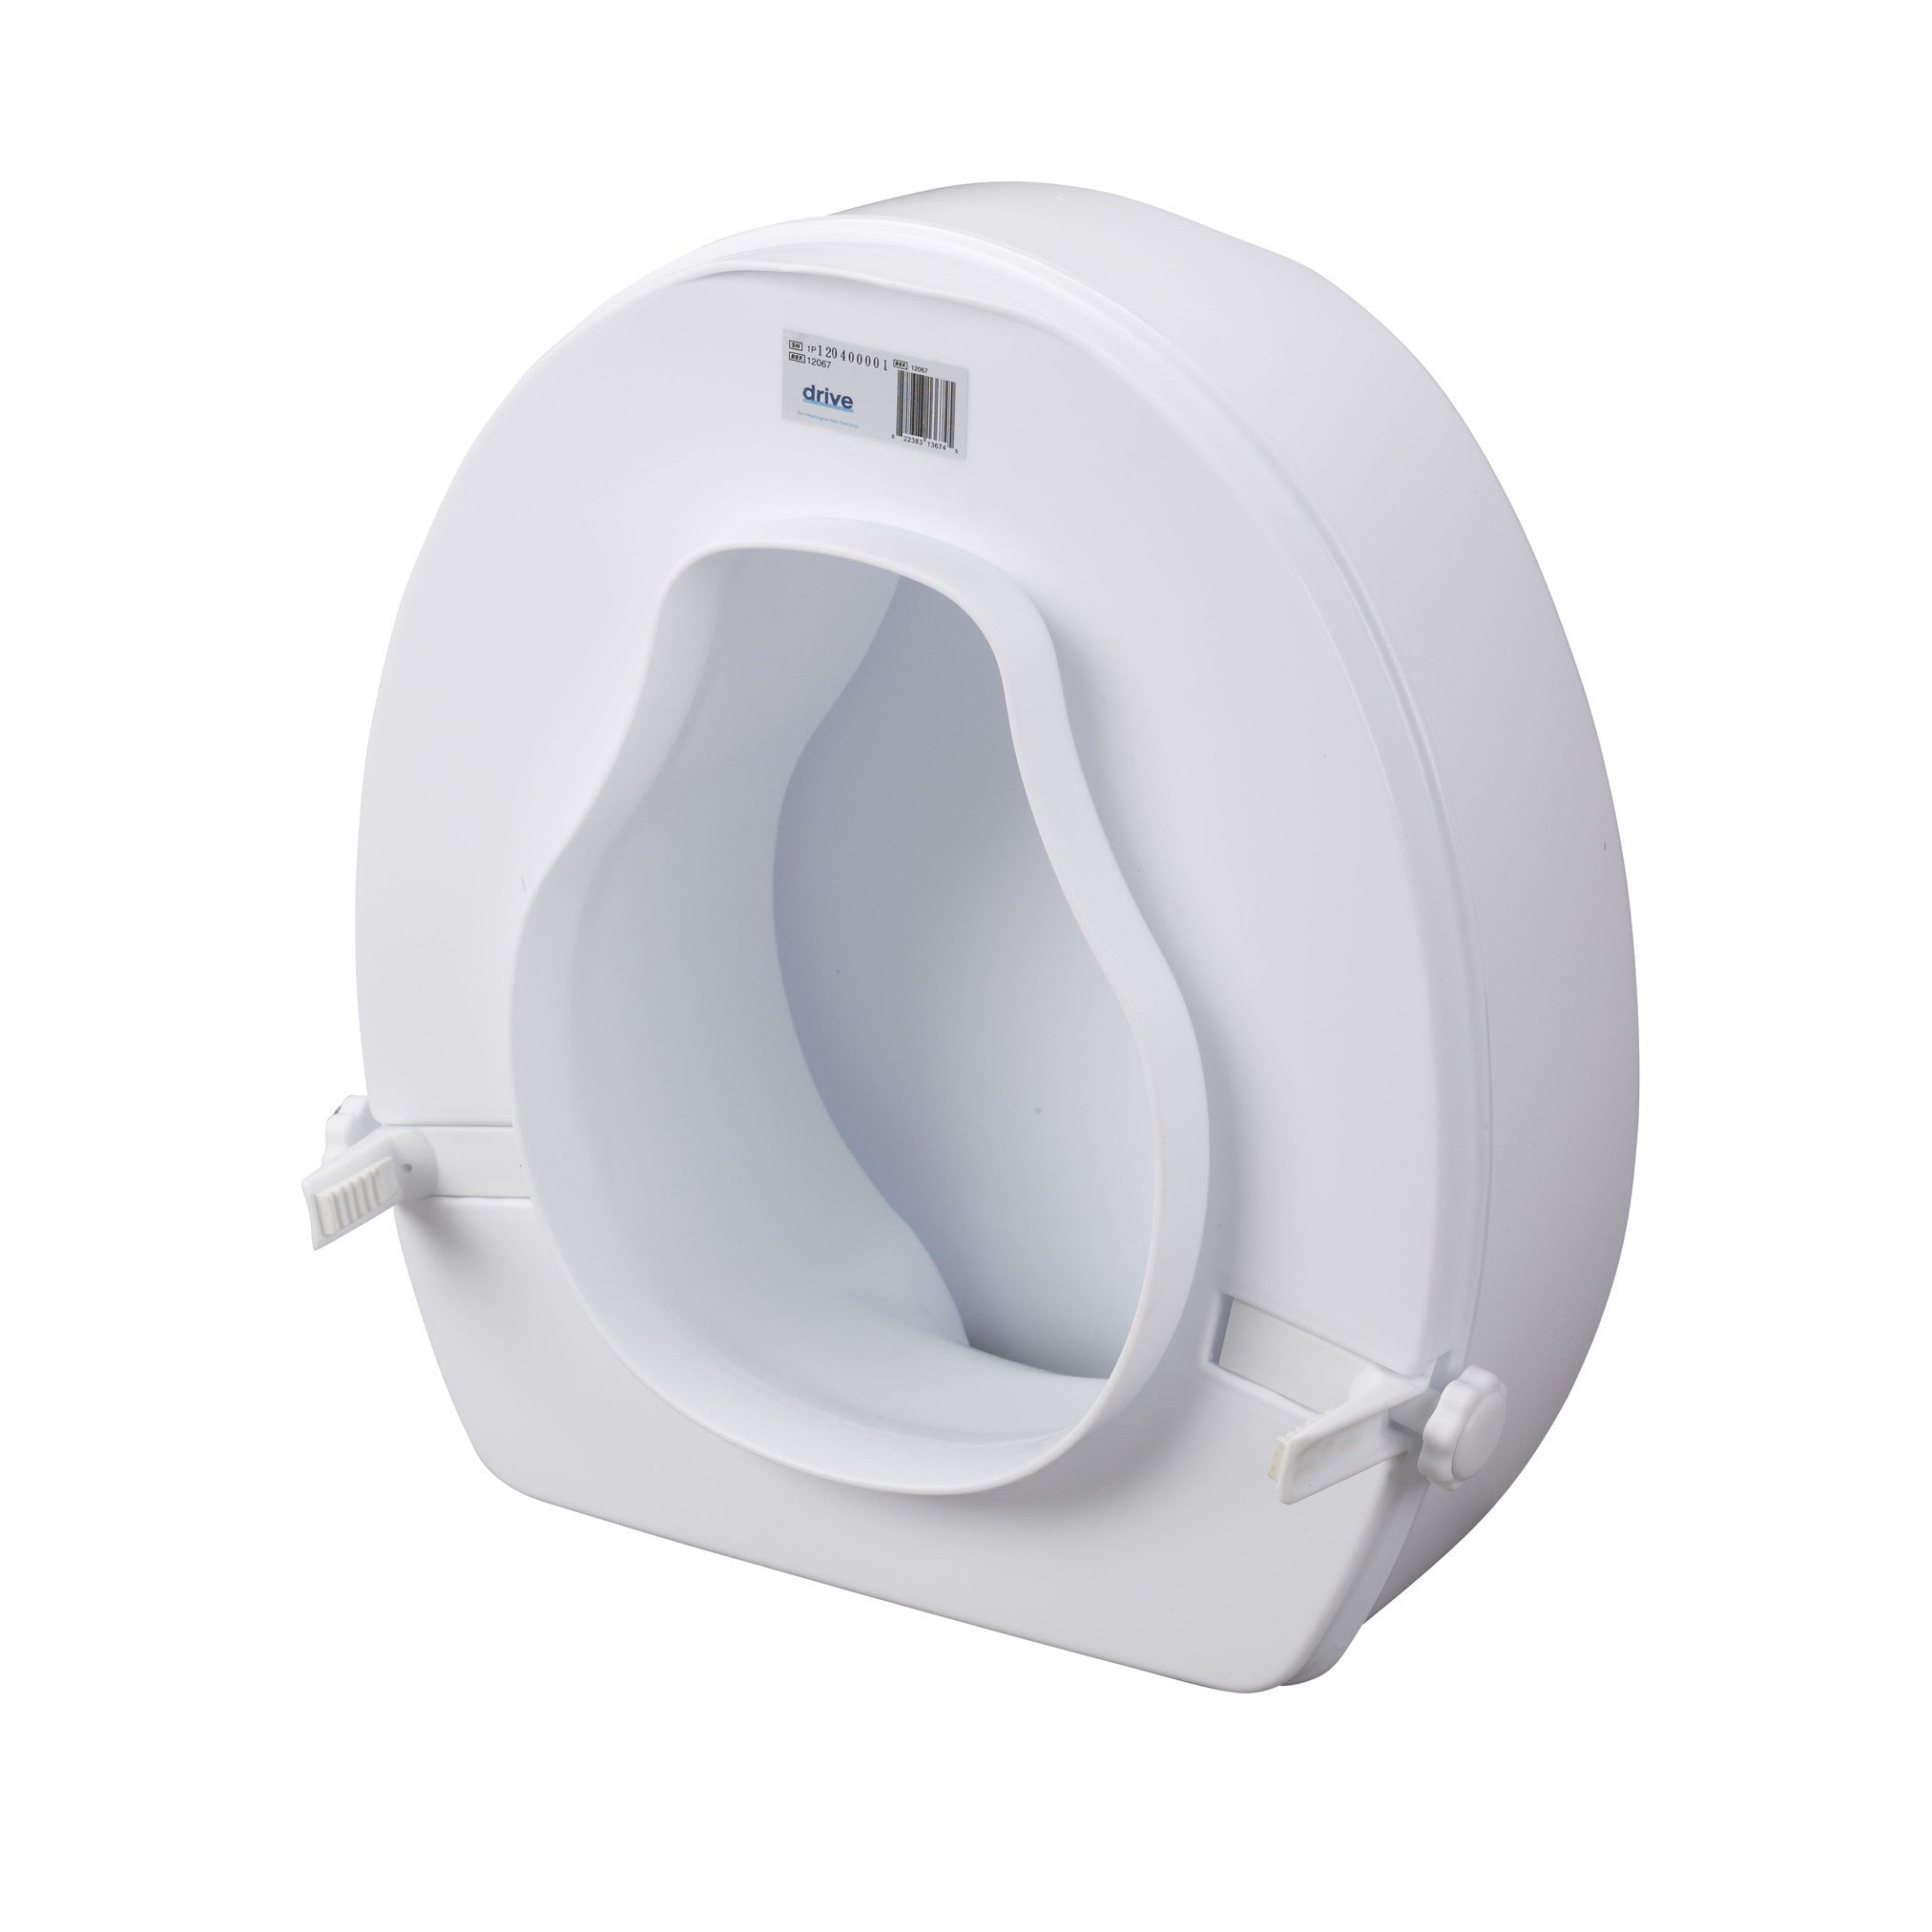 Pleasing Raised Toilet Seat With Lock And Lid 6 Short Links Chair Design For Home Short Linksinfo